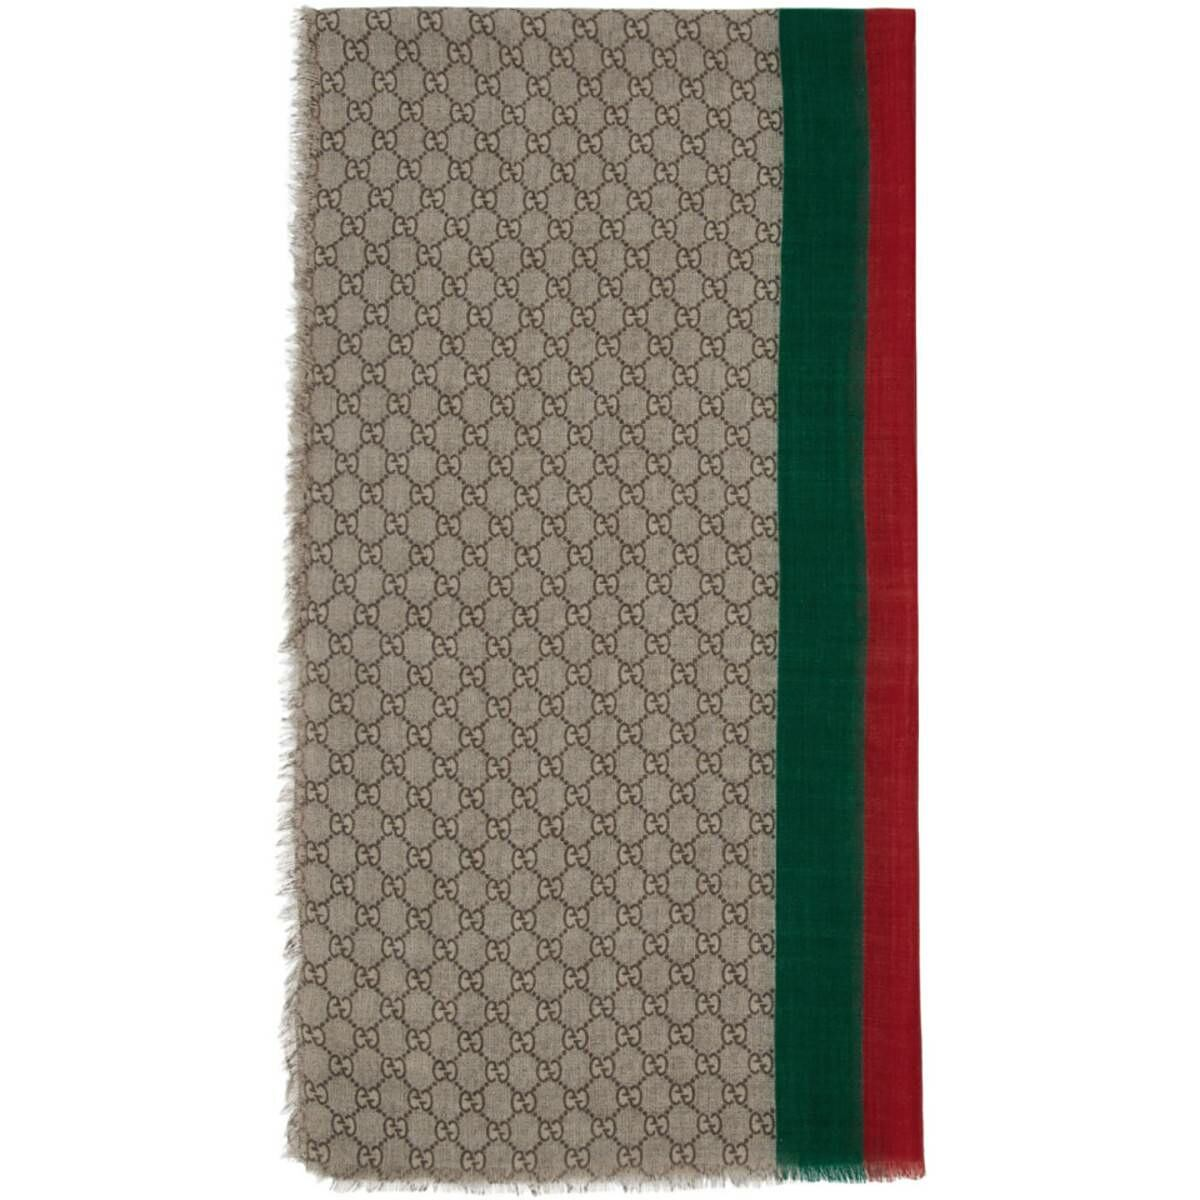 Gucci Beige Wool GG Web Scarf Ssense USA MEN Men ACCESSORIES Mens SCARFS